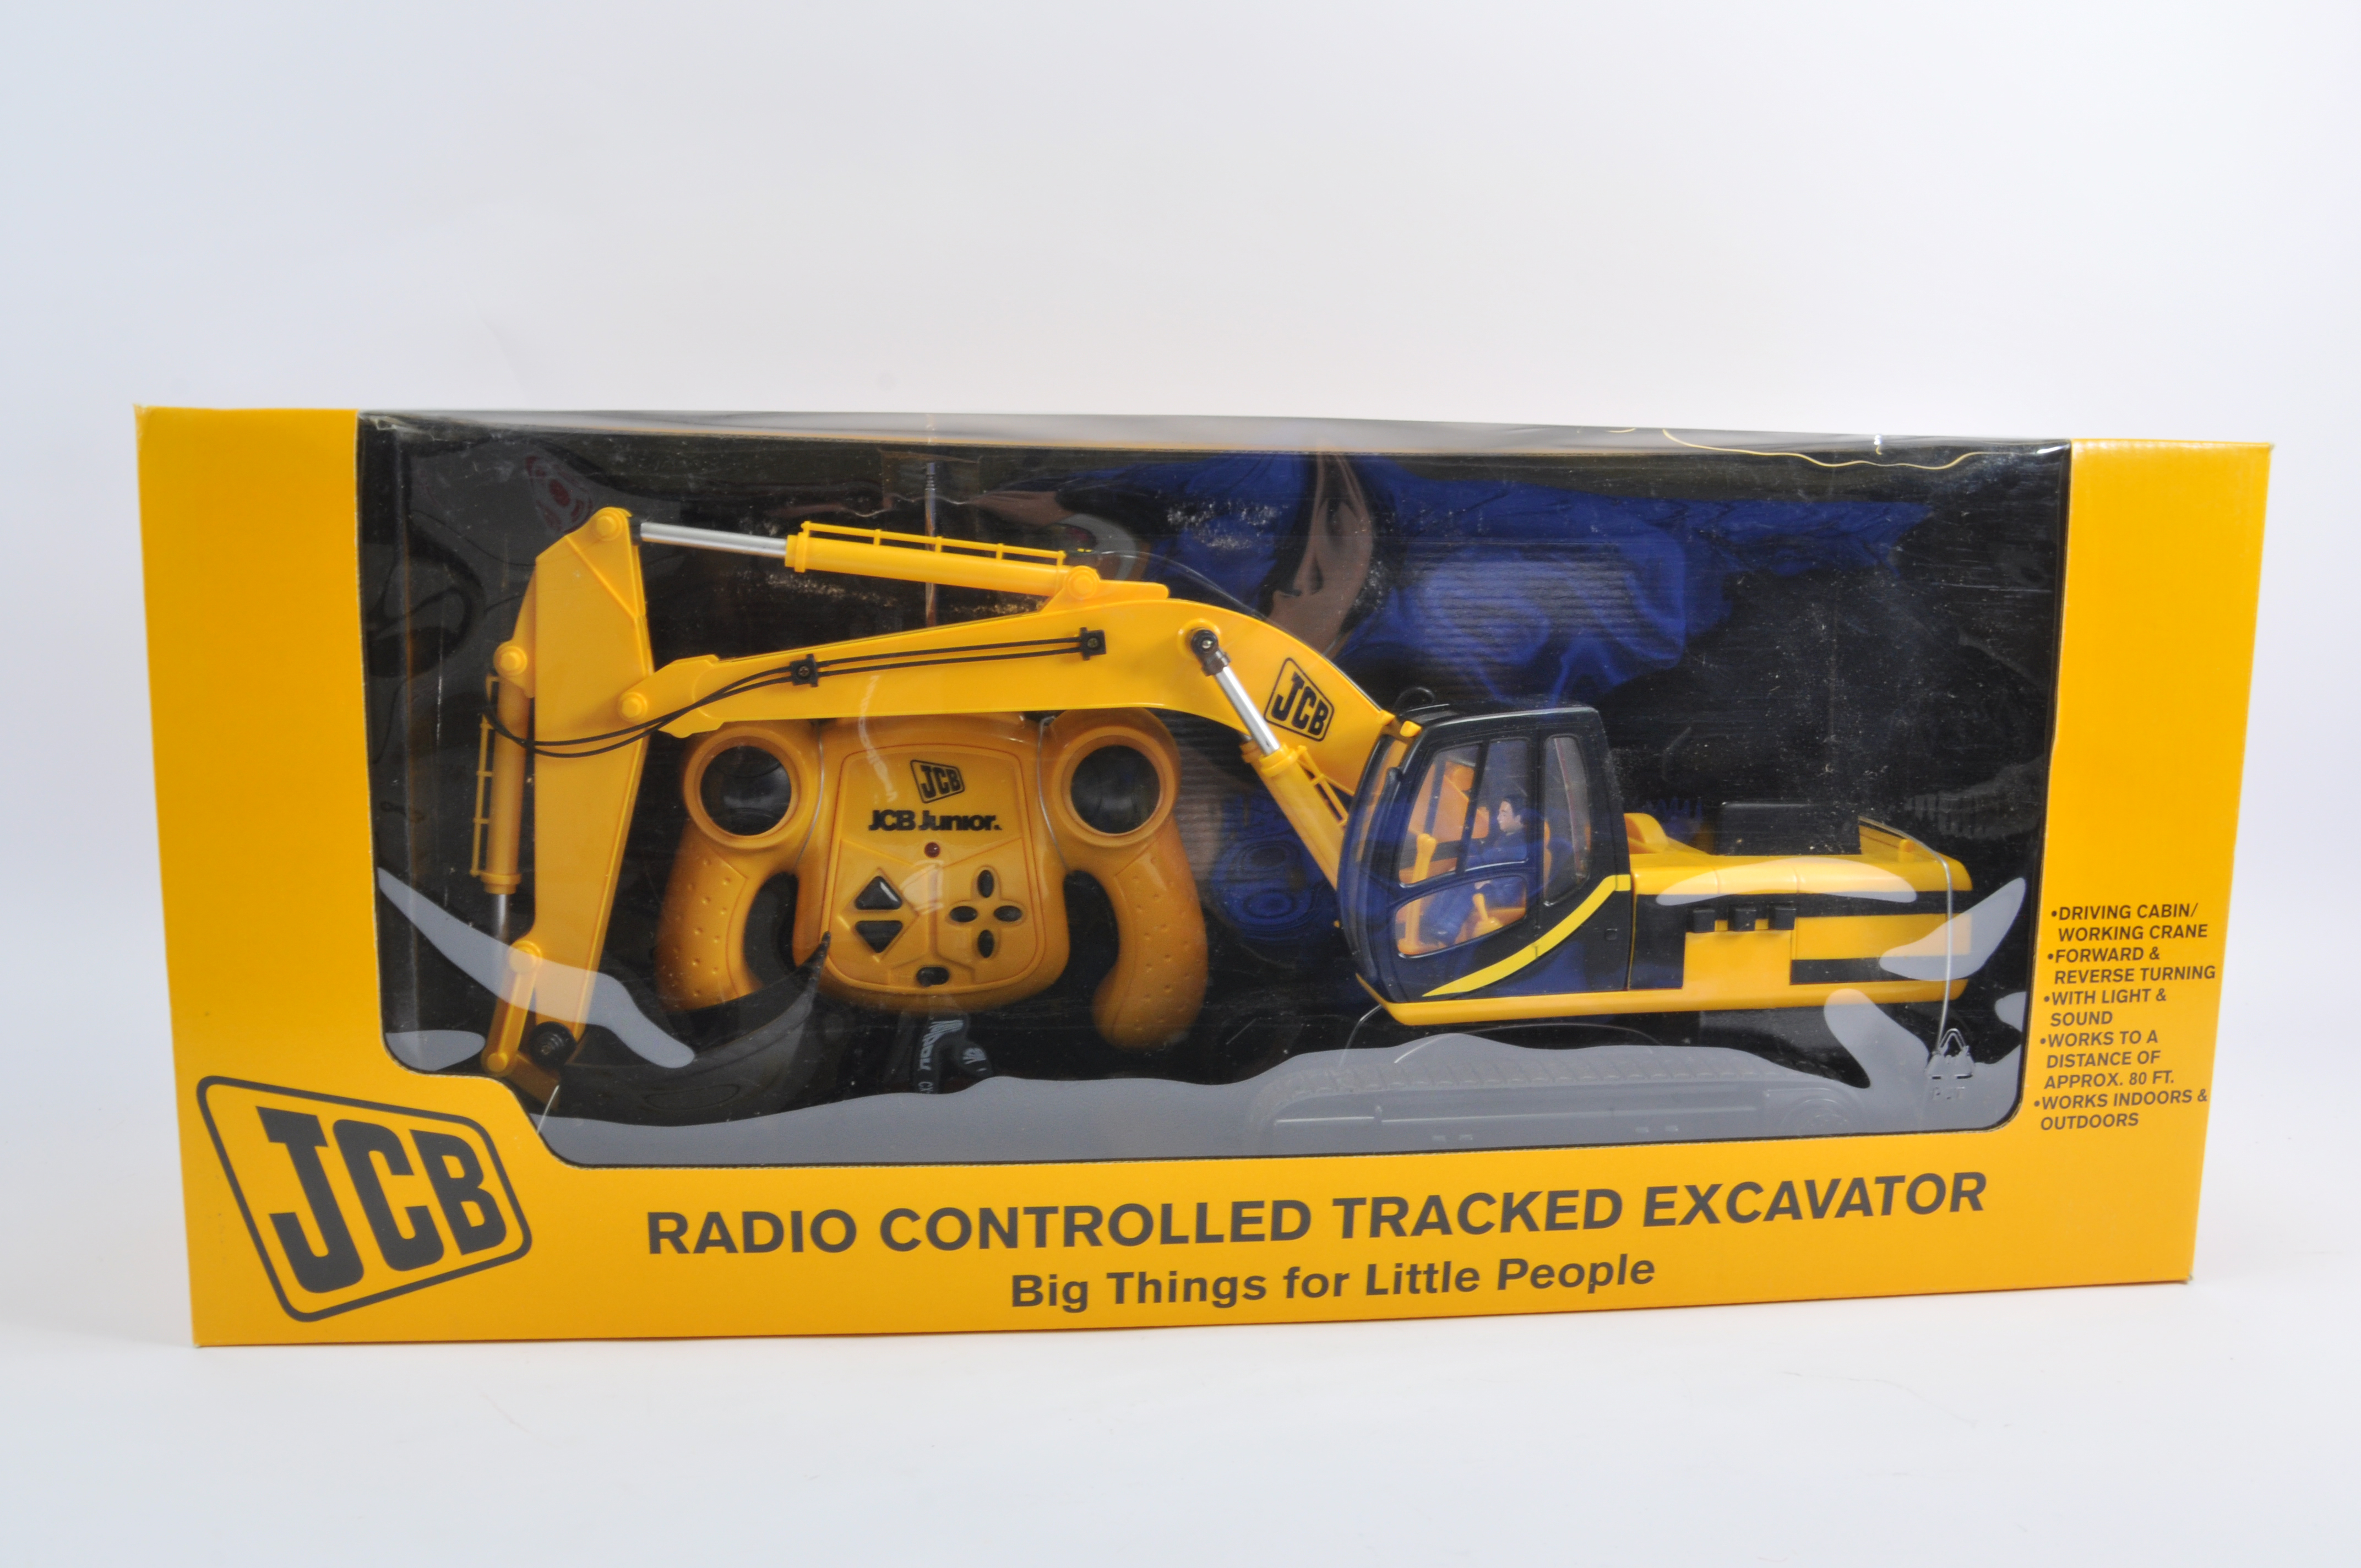 Large Scale Radio Control Jcb Tracked Excavator Approx 1 16 Scale